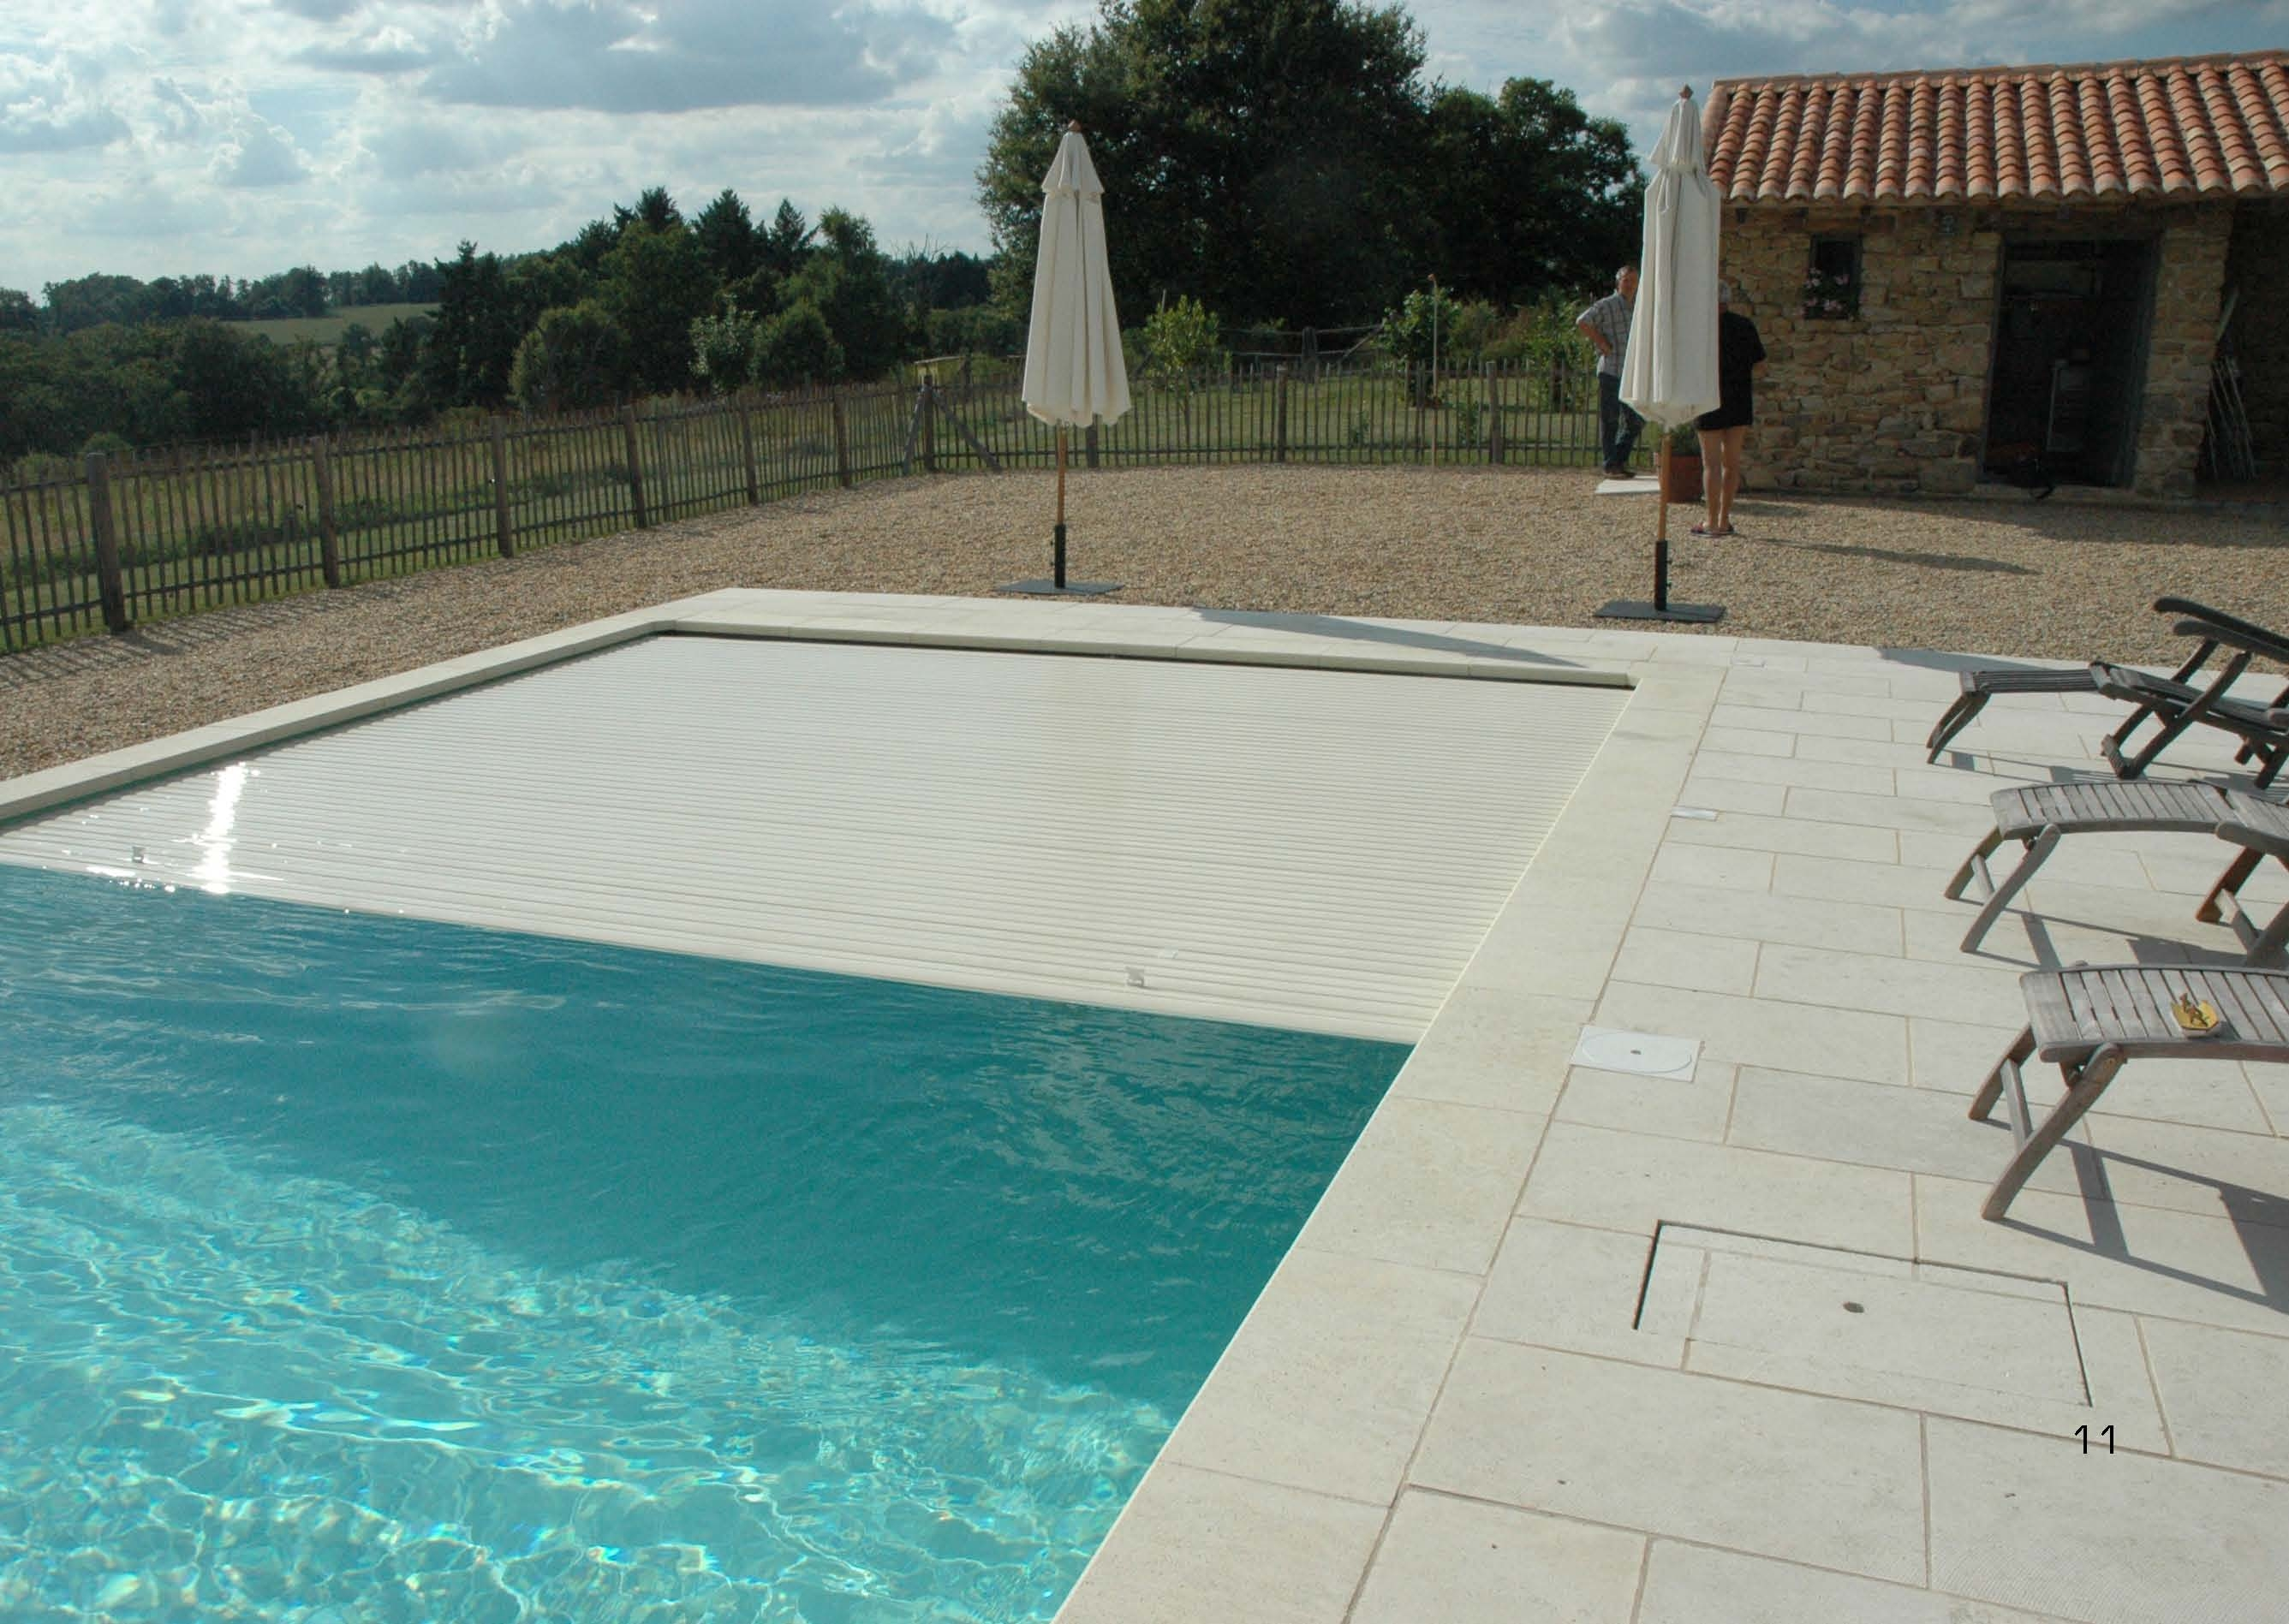 Electric Shutter Pool Cover